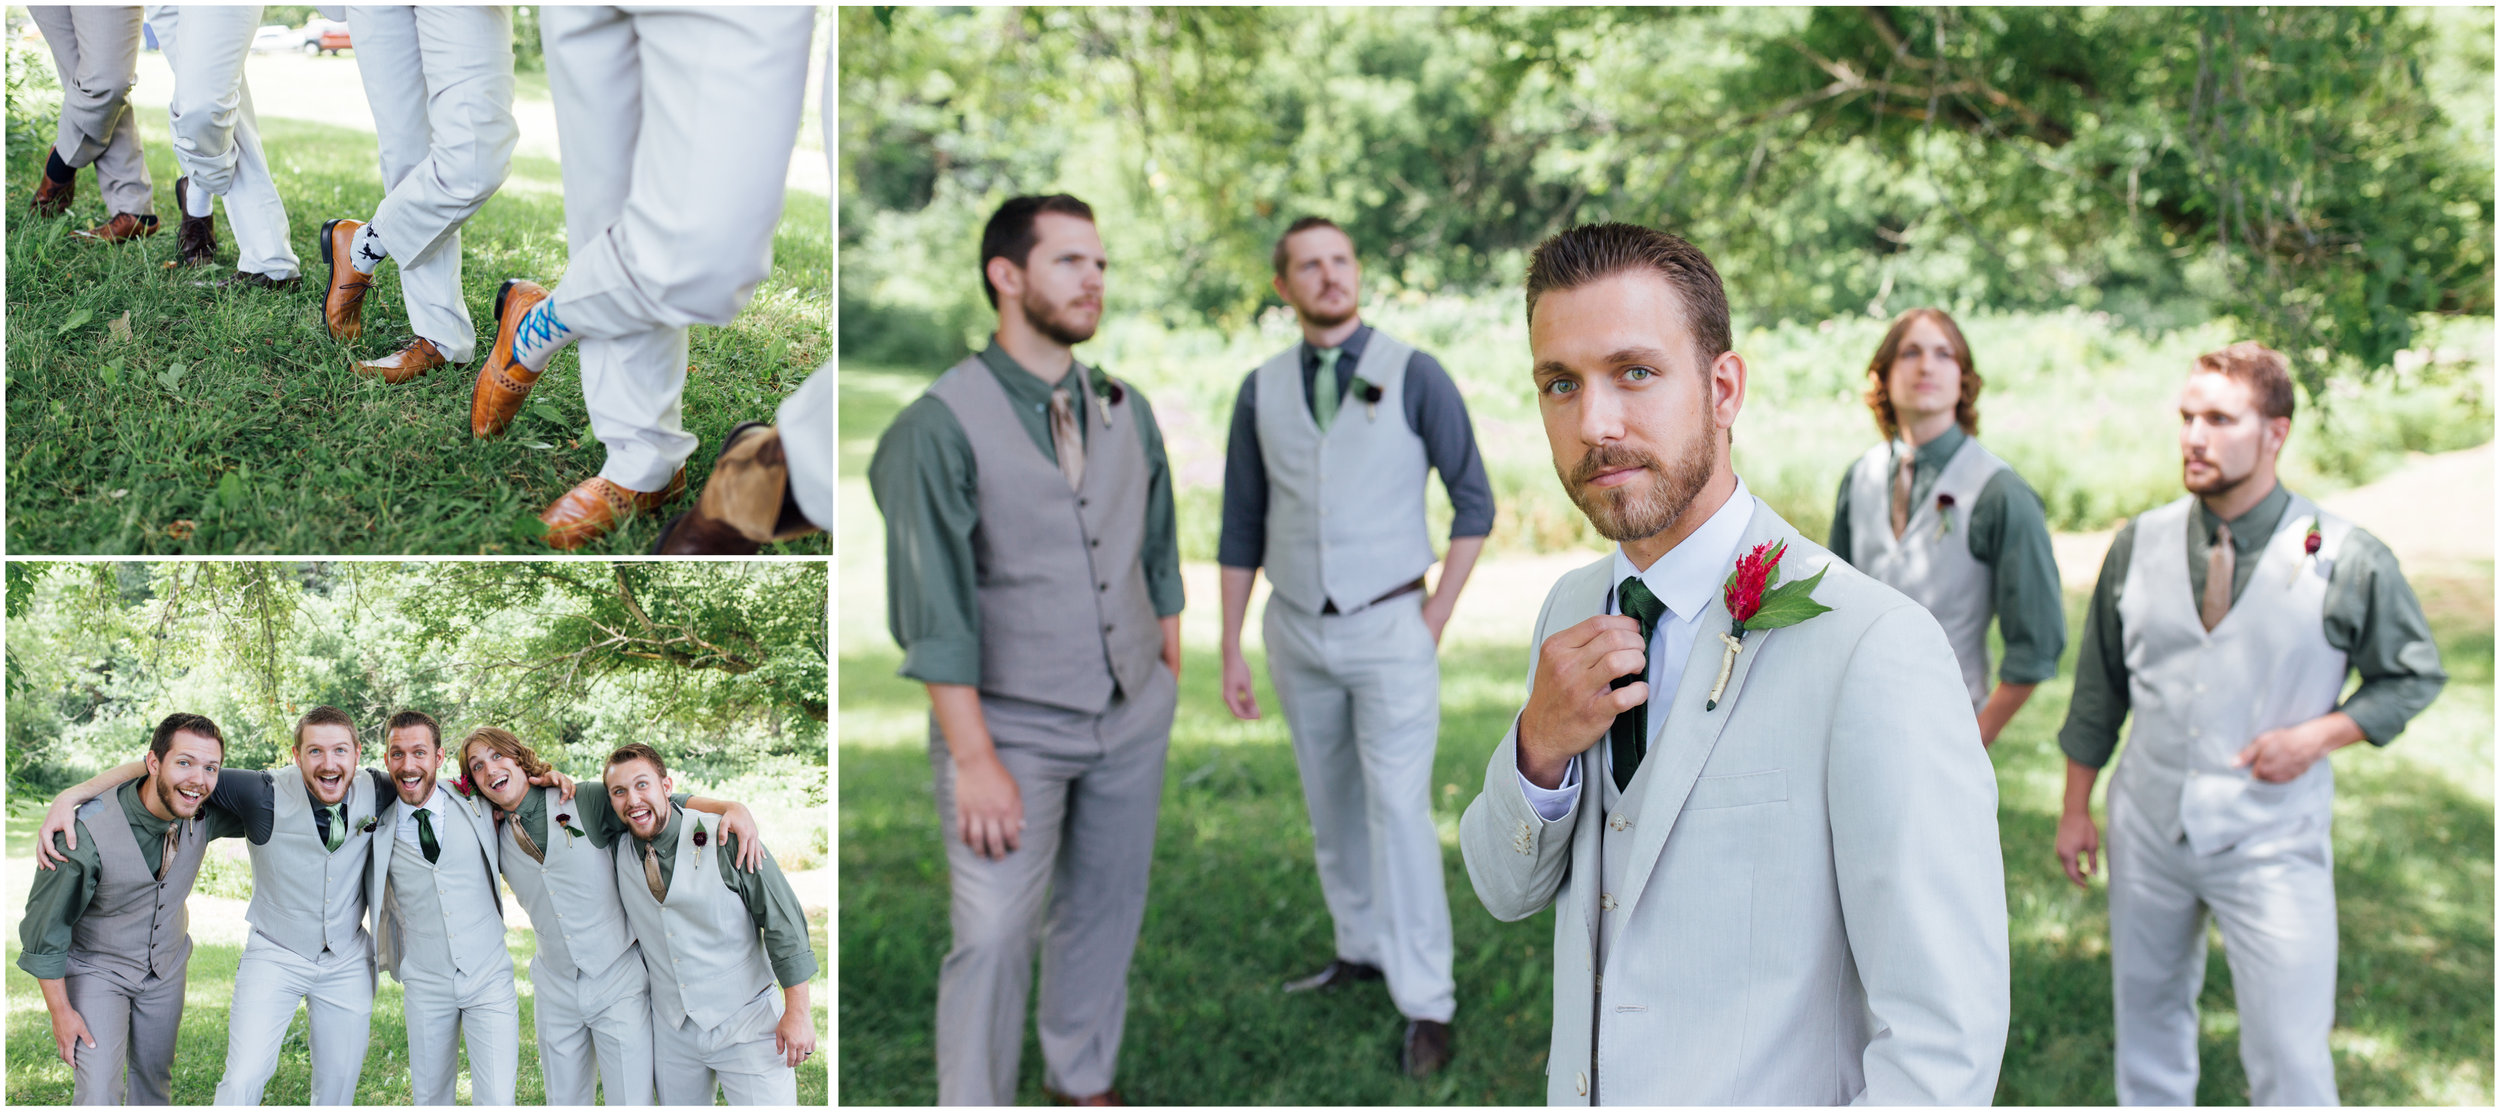 Groom and his groomsmen posing for portraits with smiles and moody faces while wearing fun socks in Vermont